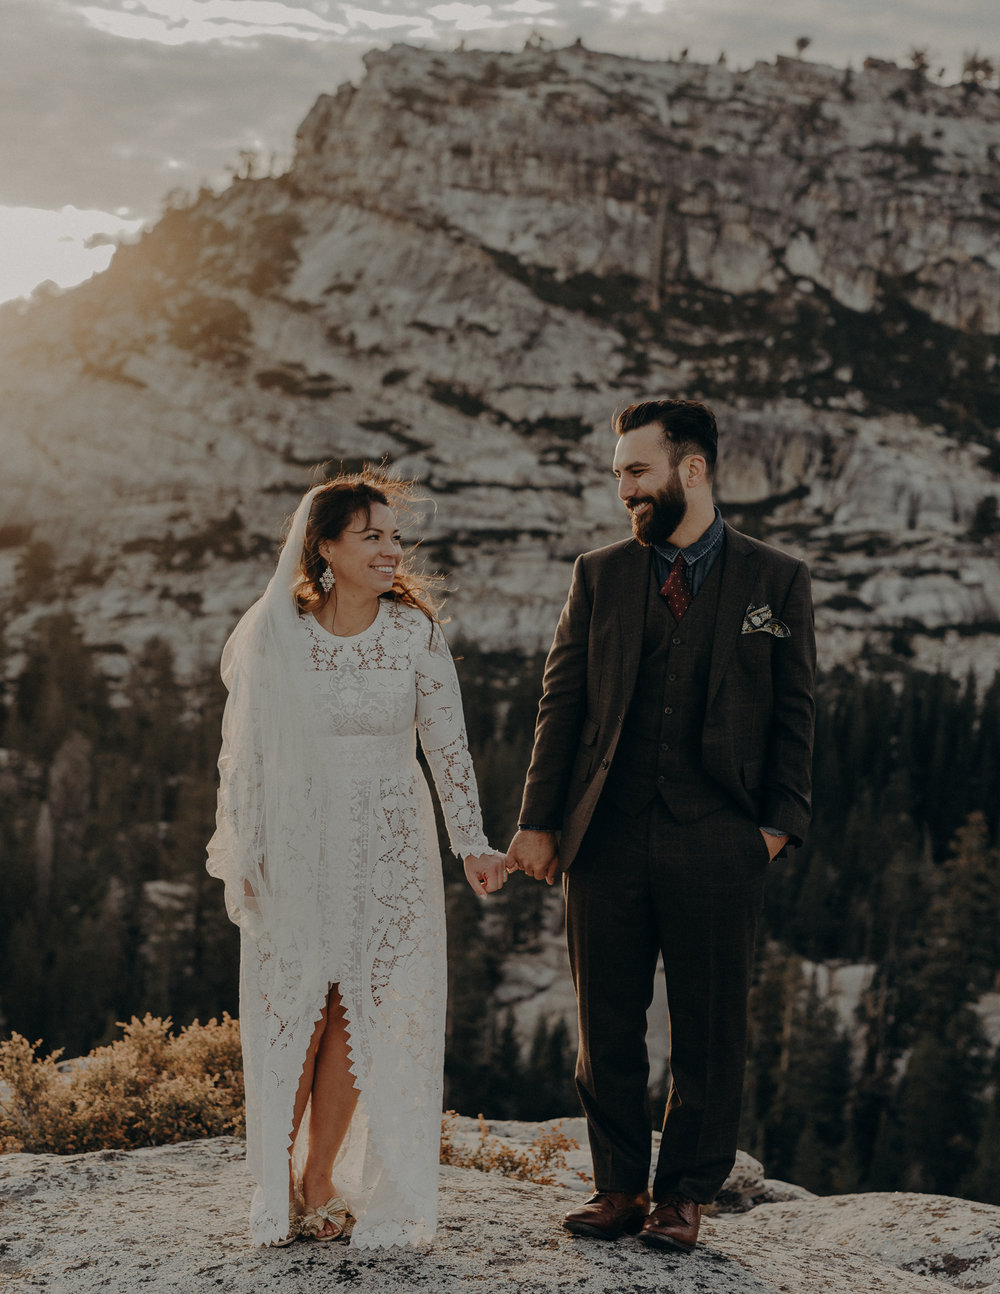 Yosemite Elopement Photographer - Evergreen Lodge Wedding Photographer - IsaiahAndTaylor.com-045.jpg